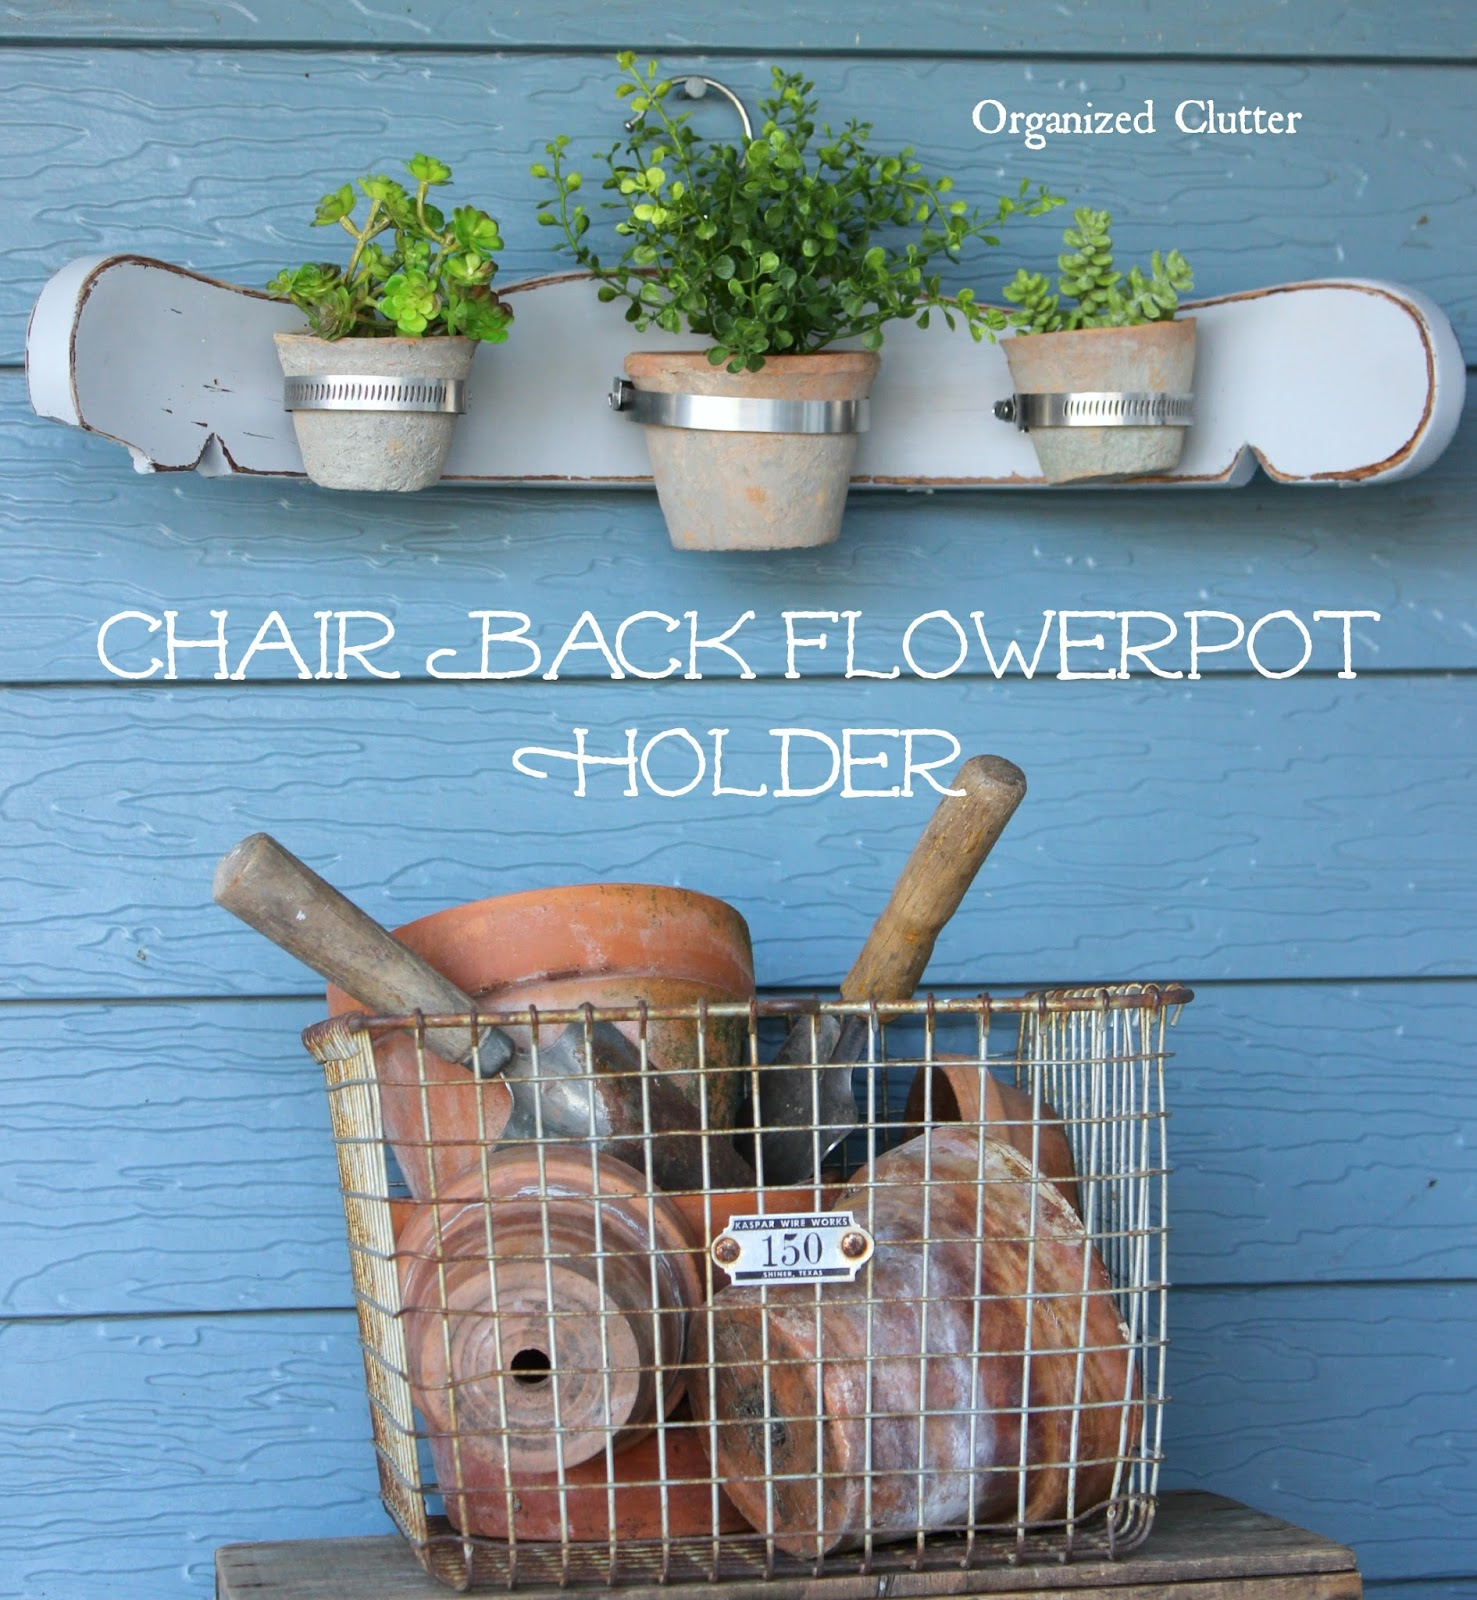 Re-purposed Chair Back Terracotta Pot Display www.organizedclutter.net